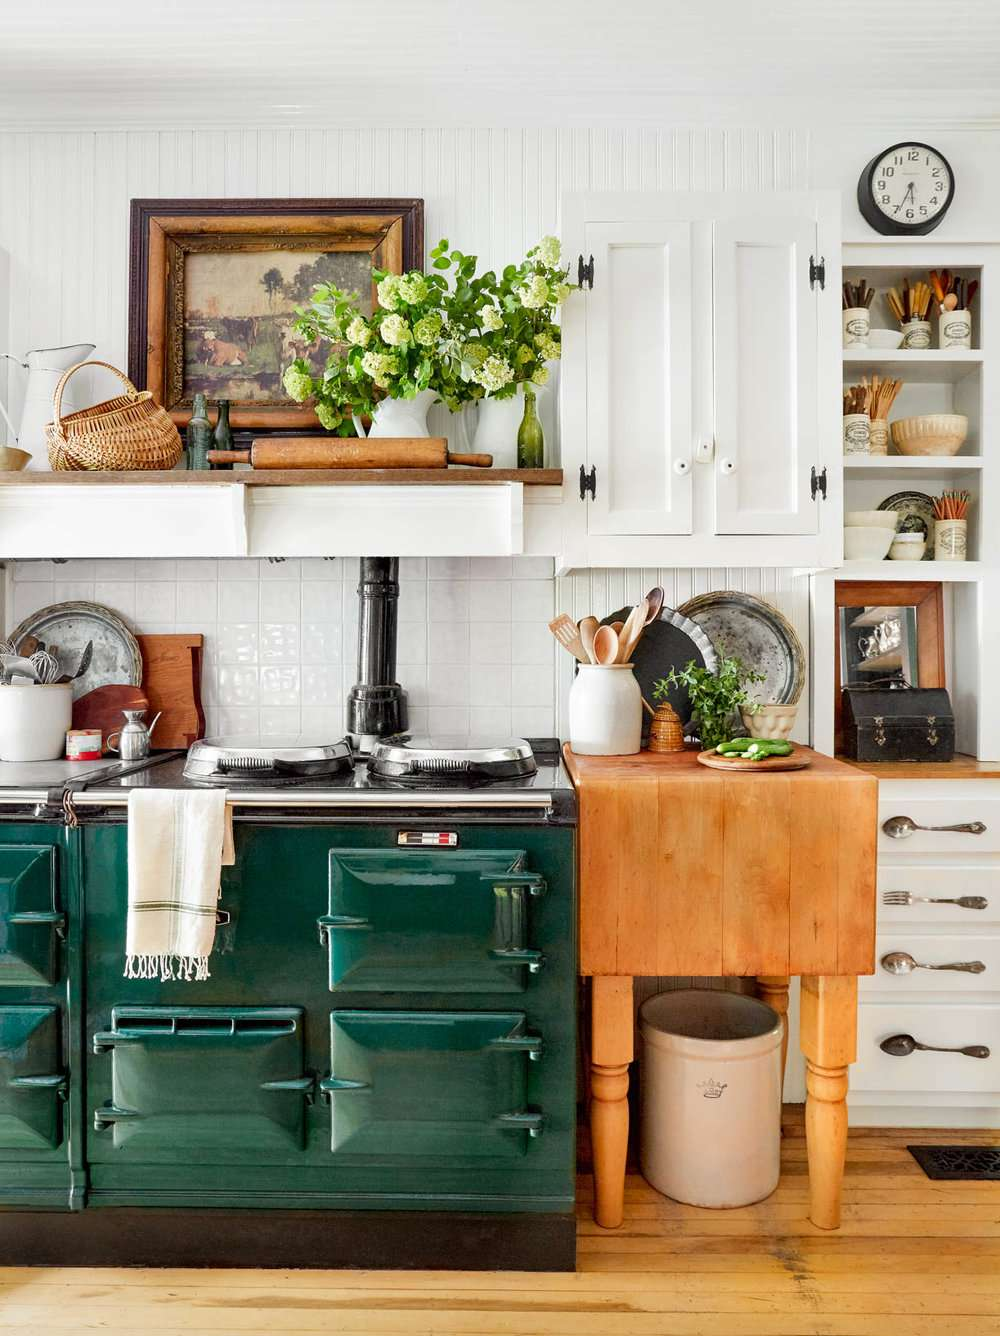 A small kitchen that's filled with kitchen utensils, wooden accents, and dark green appliances